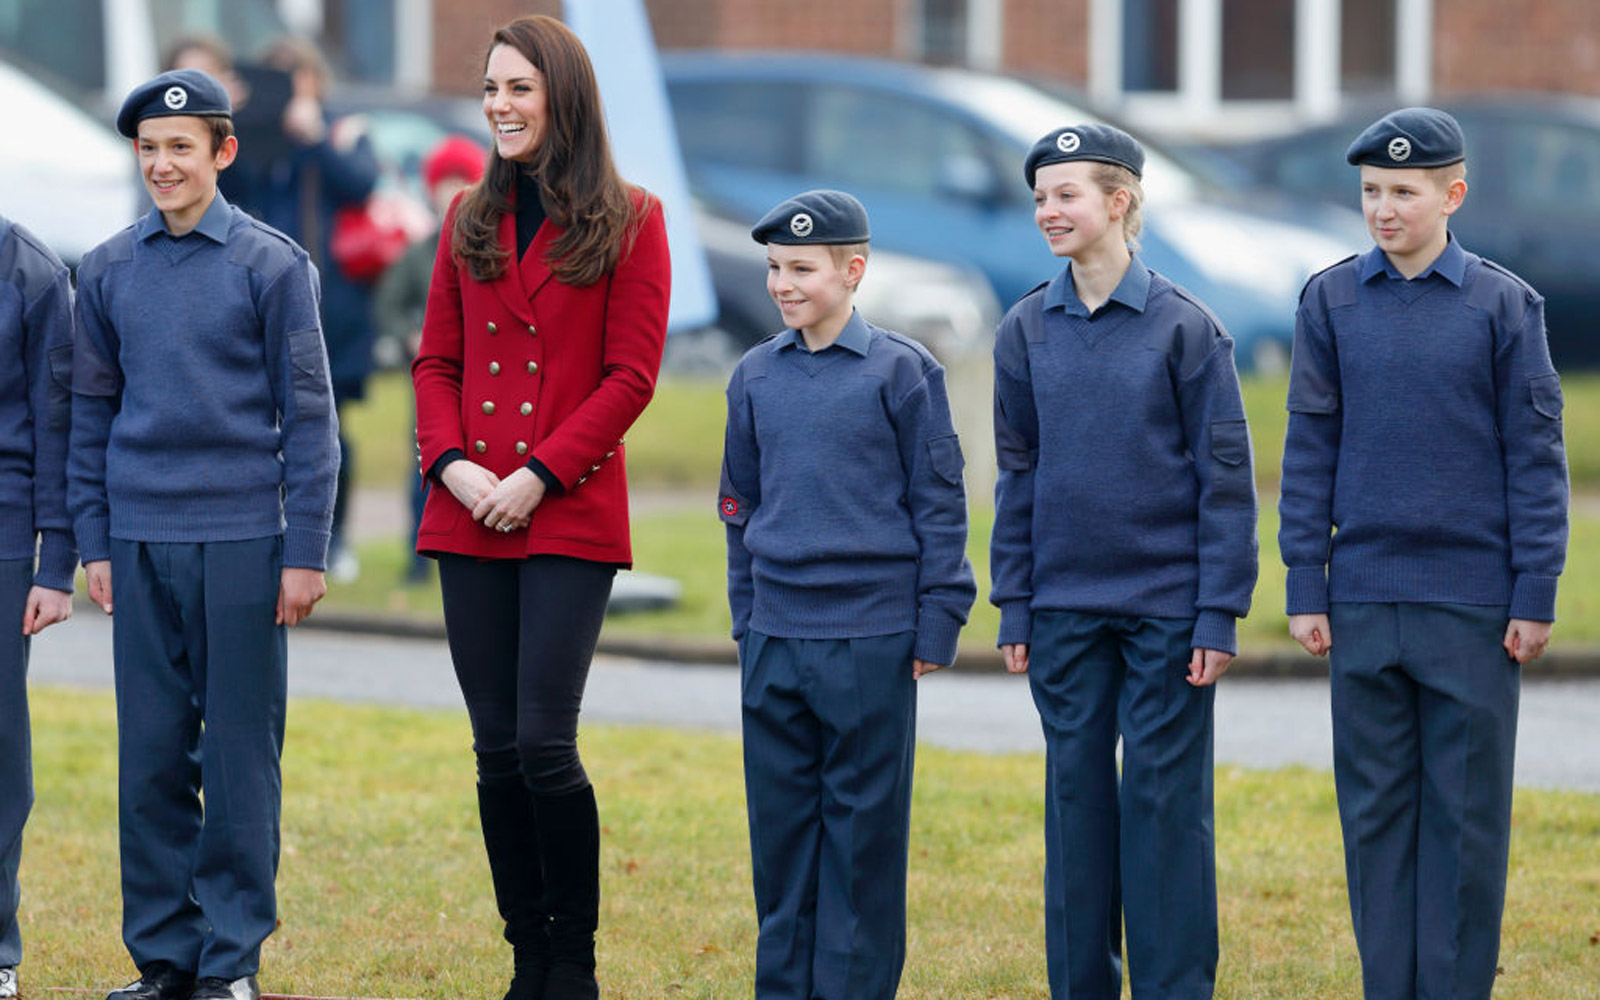 STAMFORD, UNITED KINGDOM - FEBRUARY 14: (EMBARGOED FOR PUBLICATION IN UK NEWSPAPERS UNTIL 48 HOURS AFTER CREATE DATE AND TIME) Catherine, Duchess of Cambridge joins in with a team building exercise during a visit to RAF Wittering to meet air cadets taking